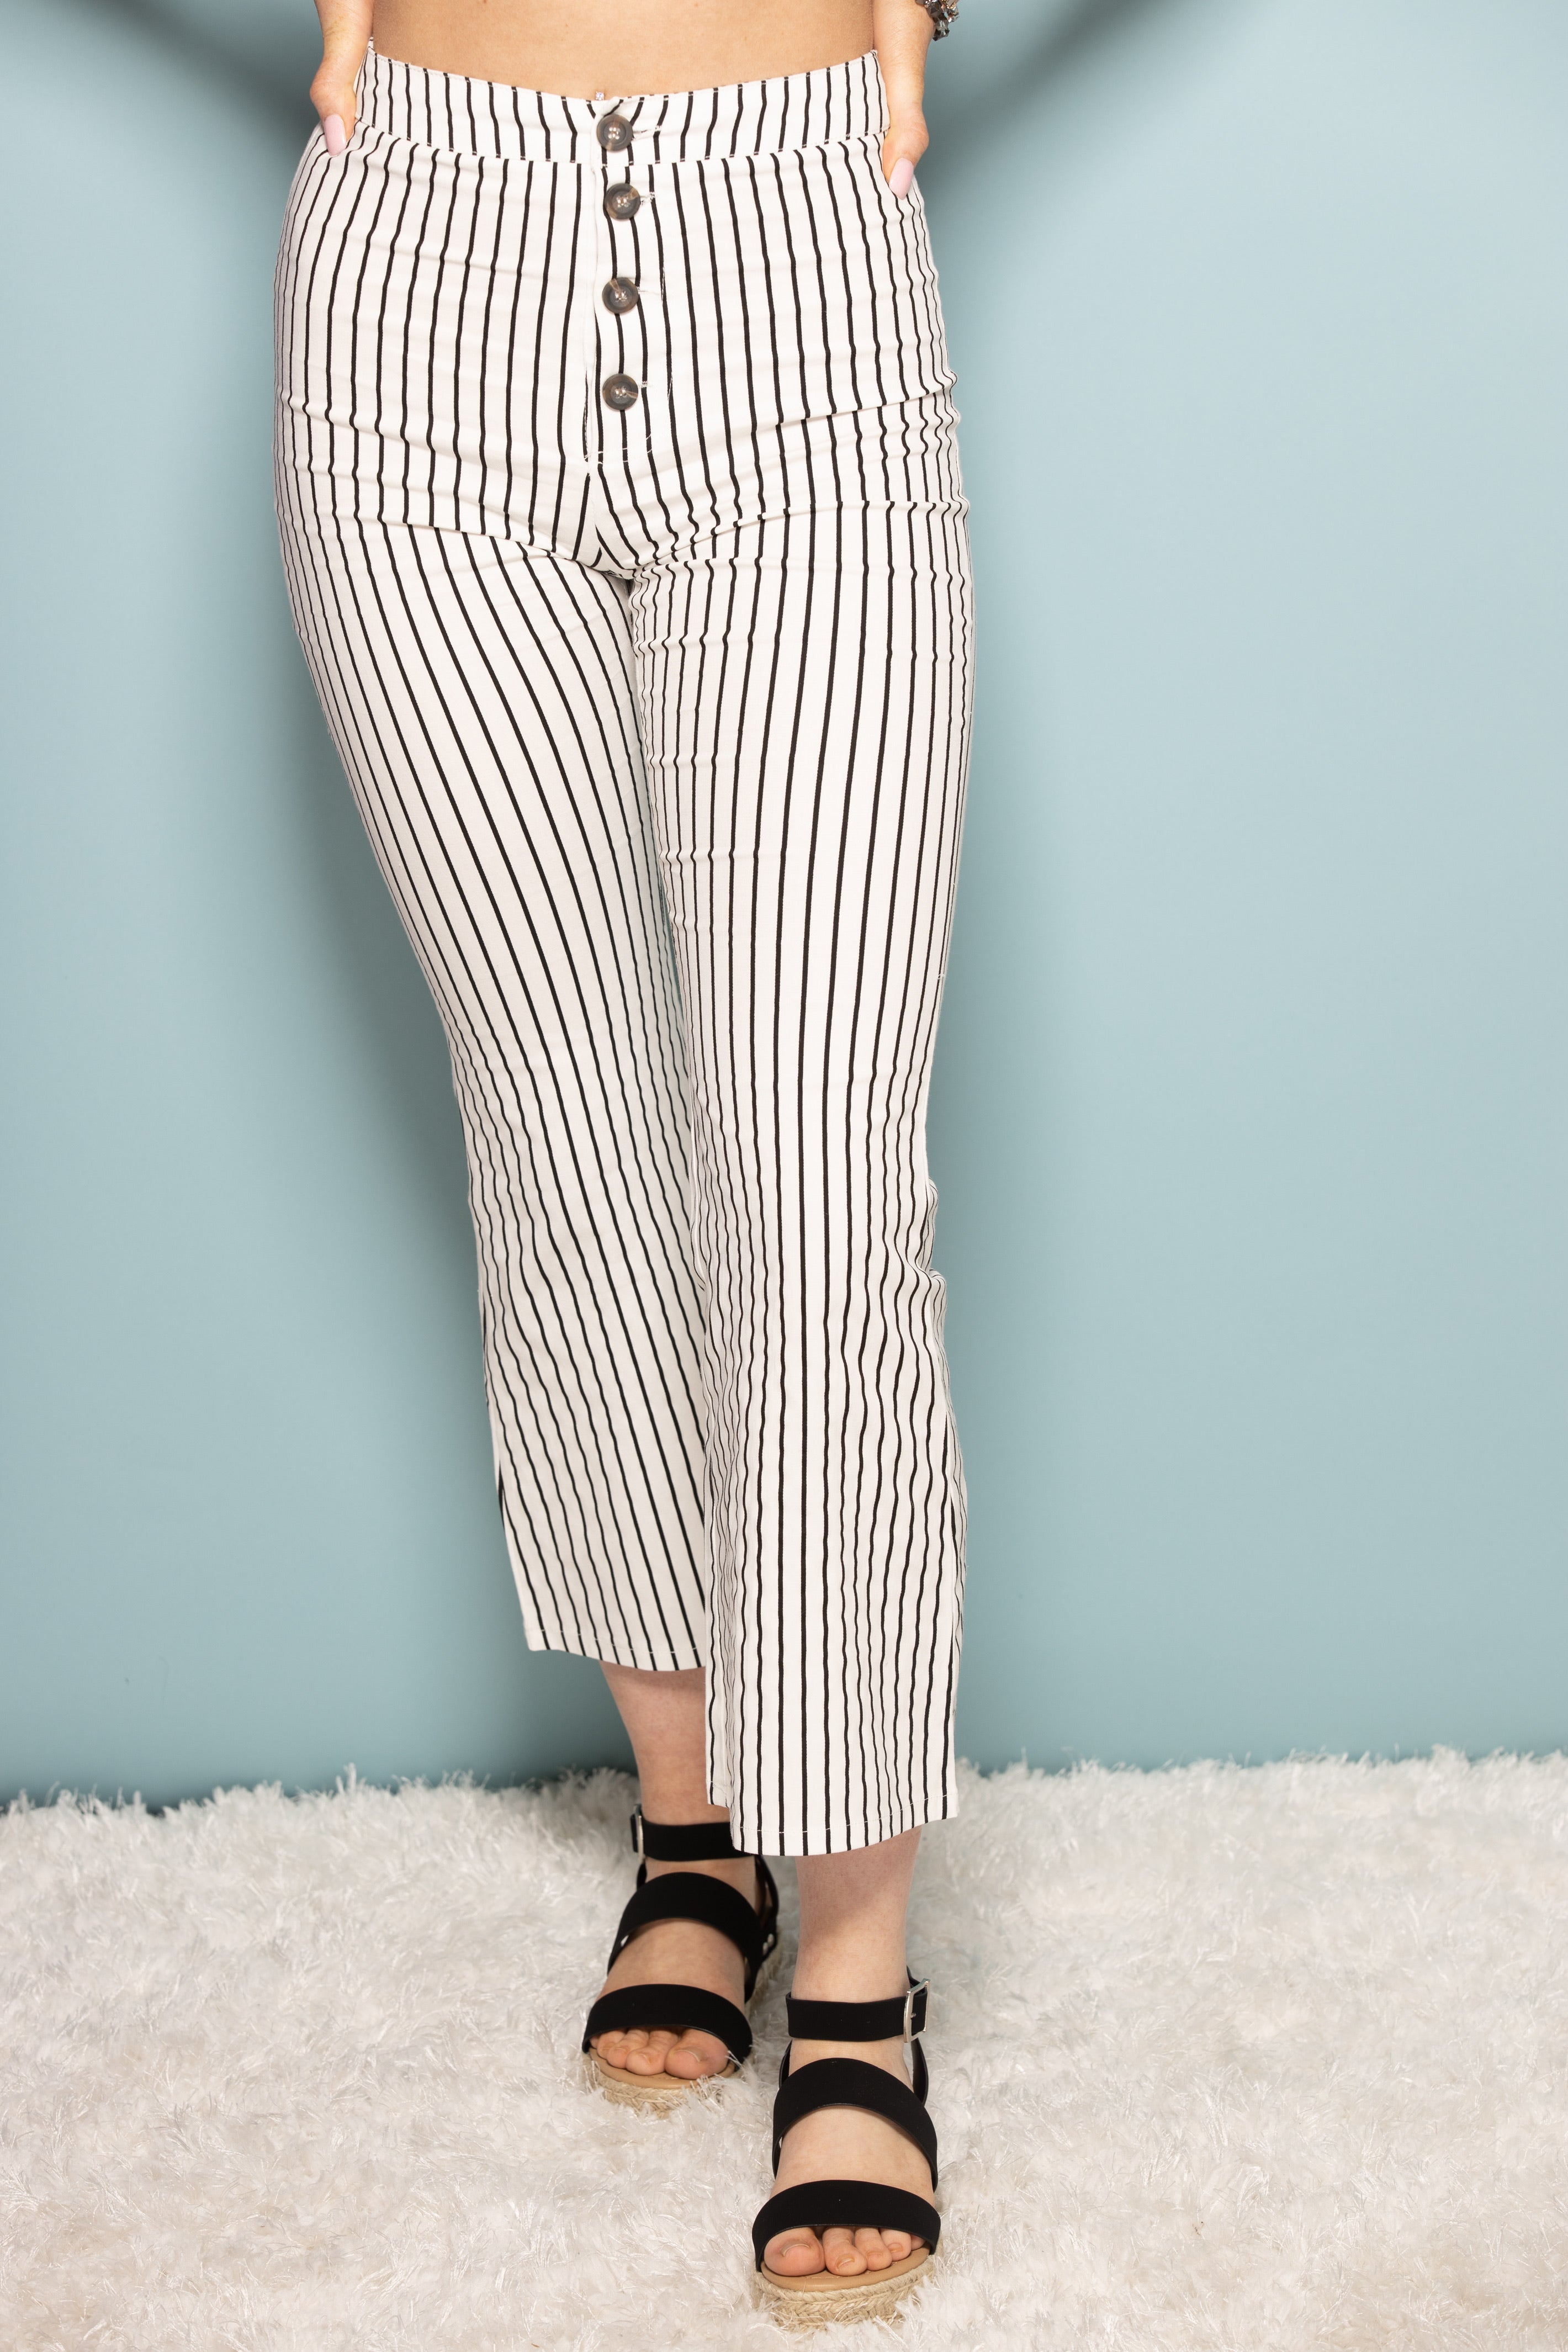 Standing By Your Side Stripe Cropped Pants - impromptu boutique